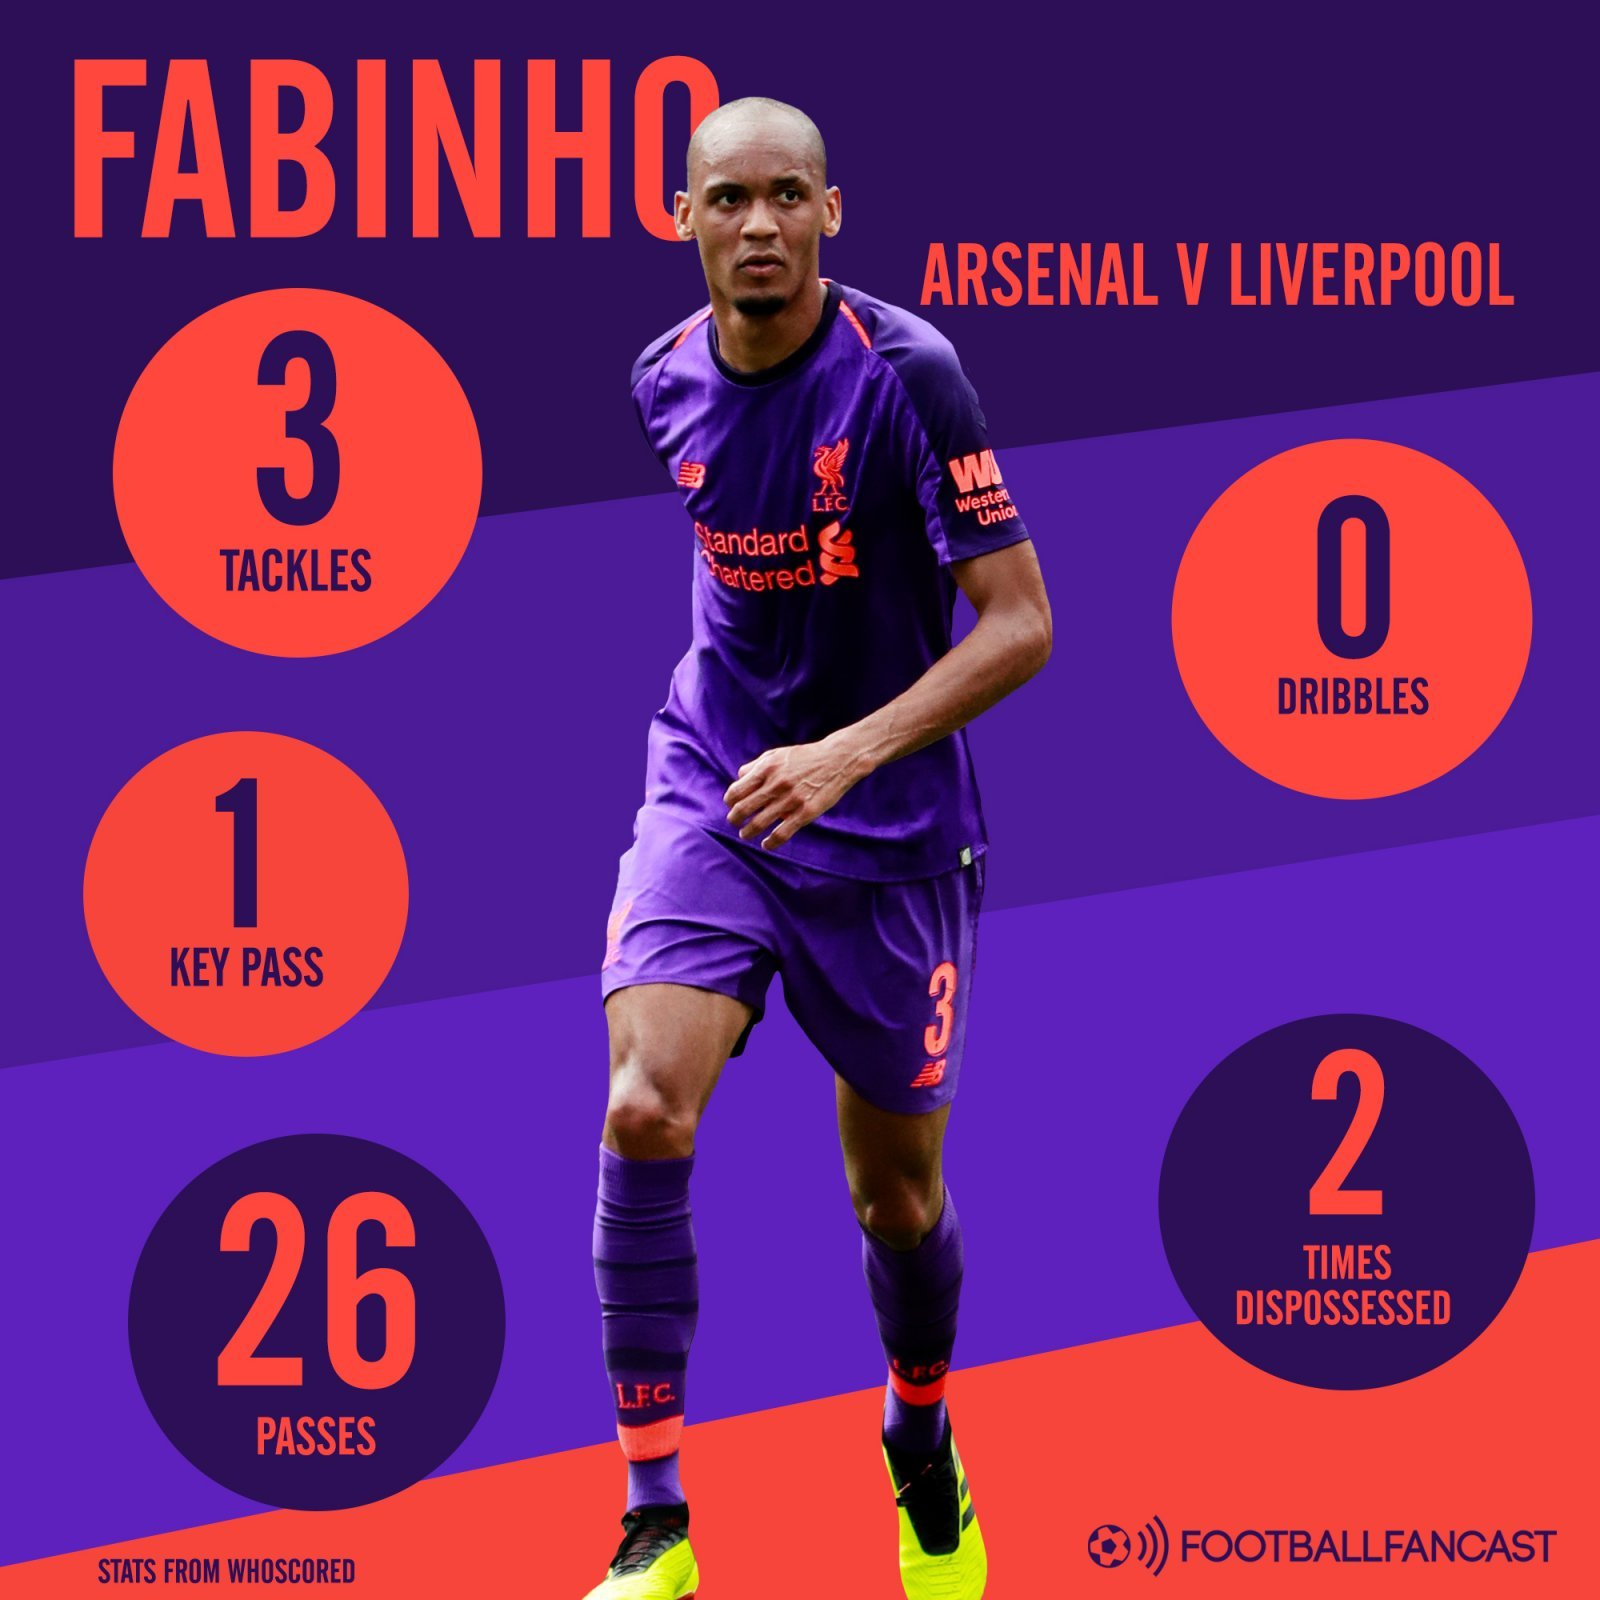 Fabinho stats for Arsenal v Liverpool